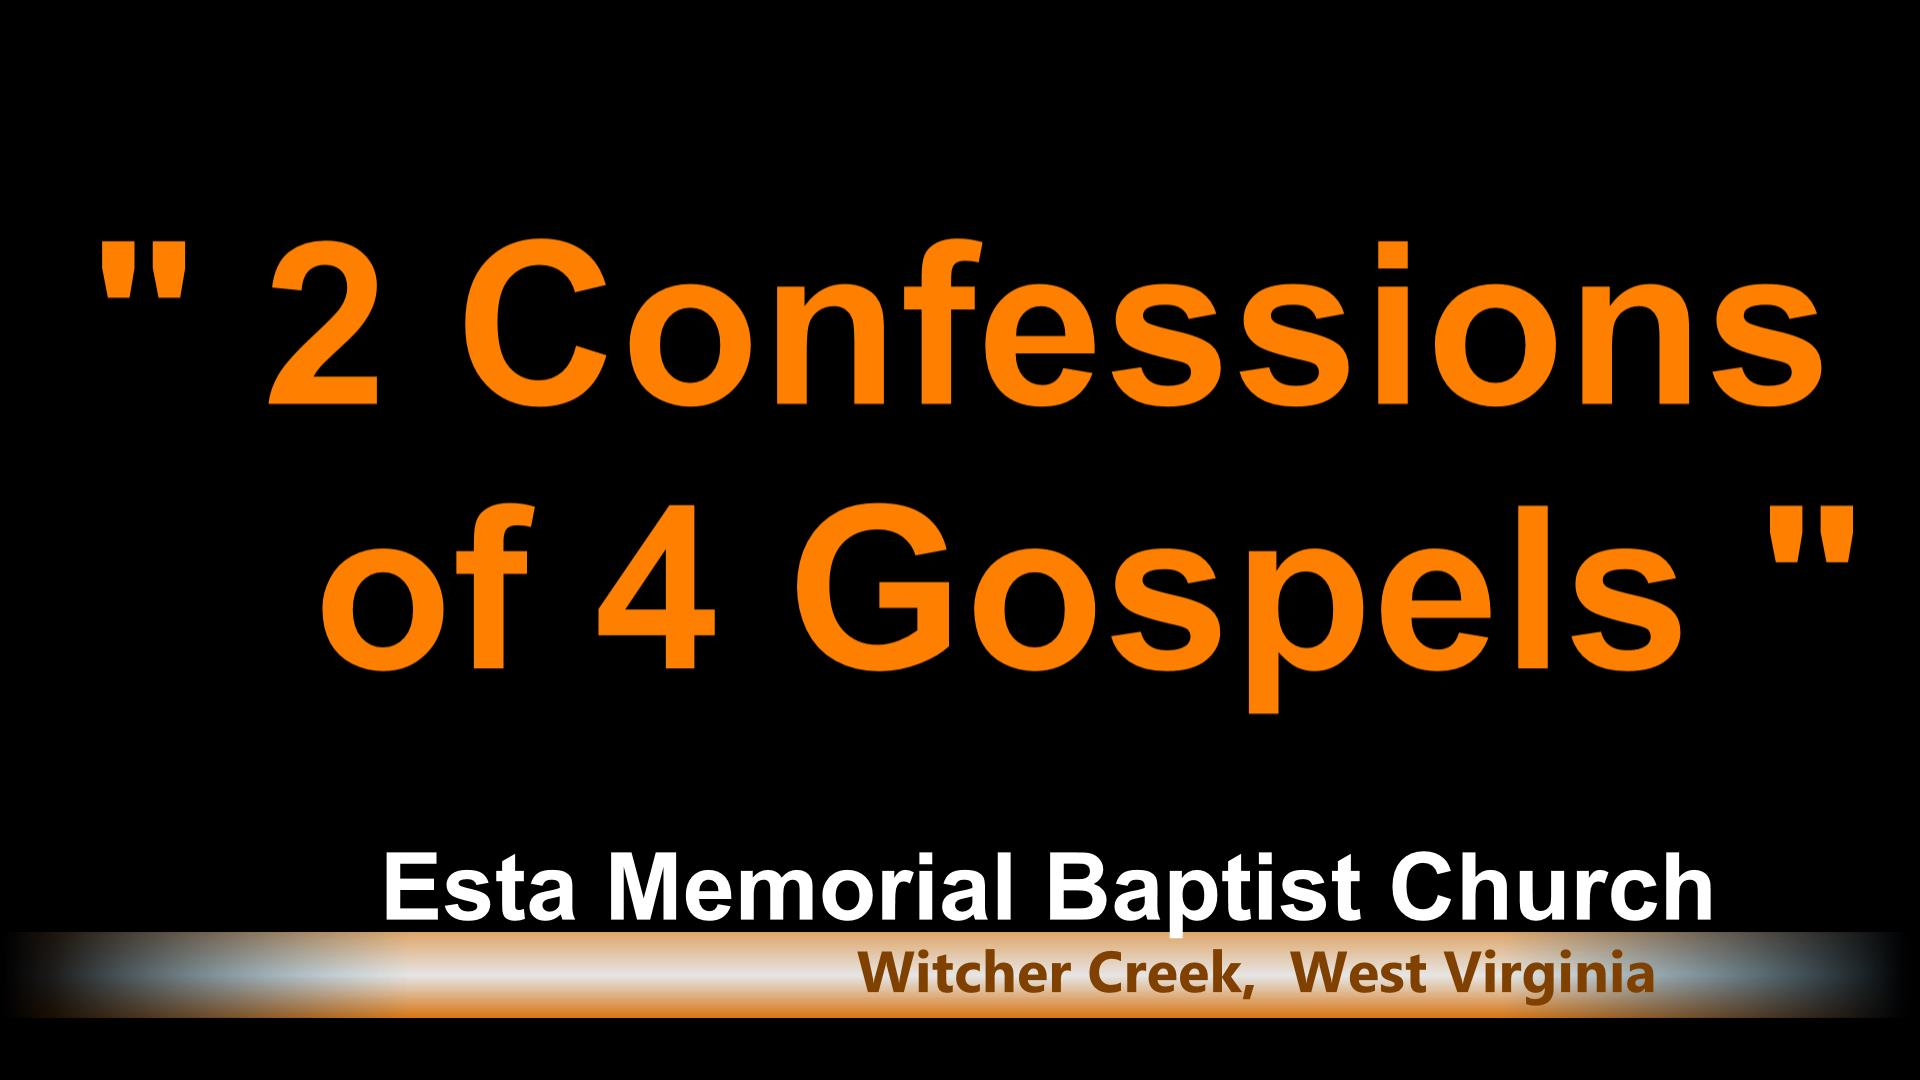 2 Confessions of 4 Gospels